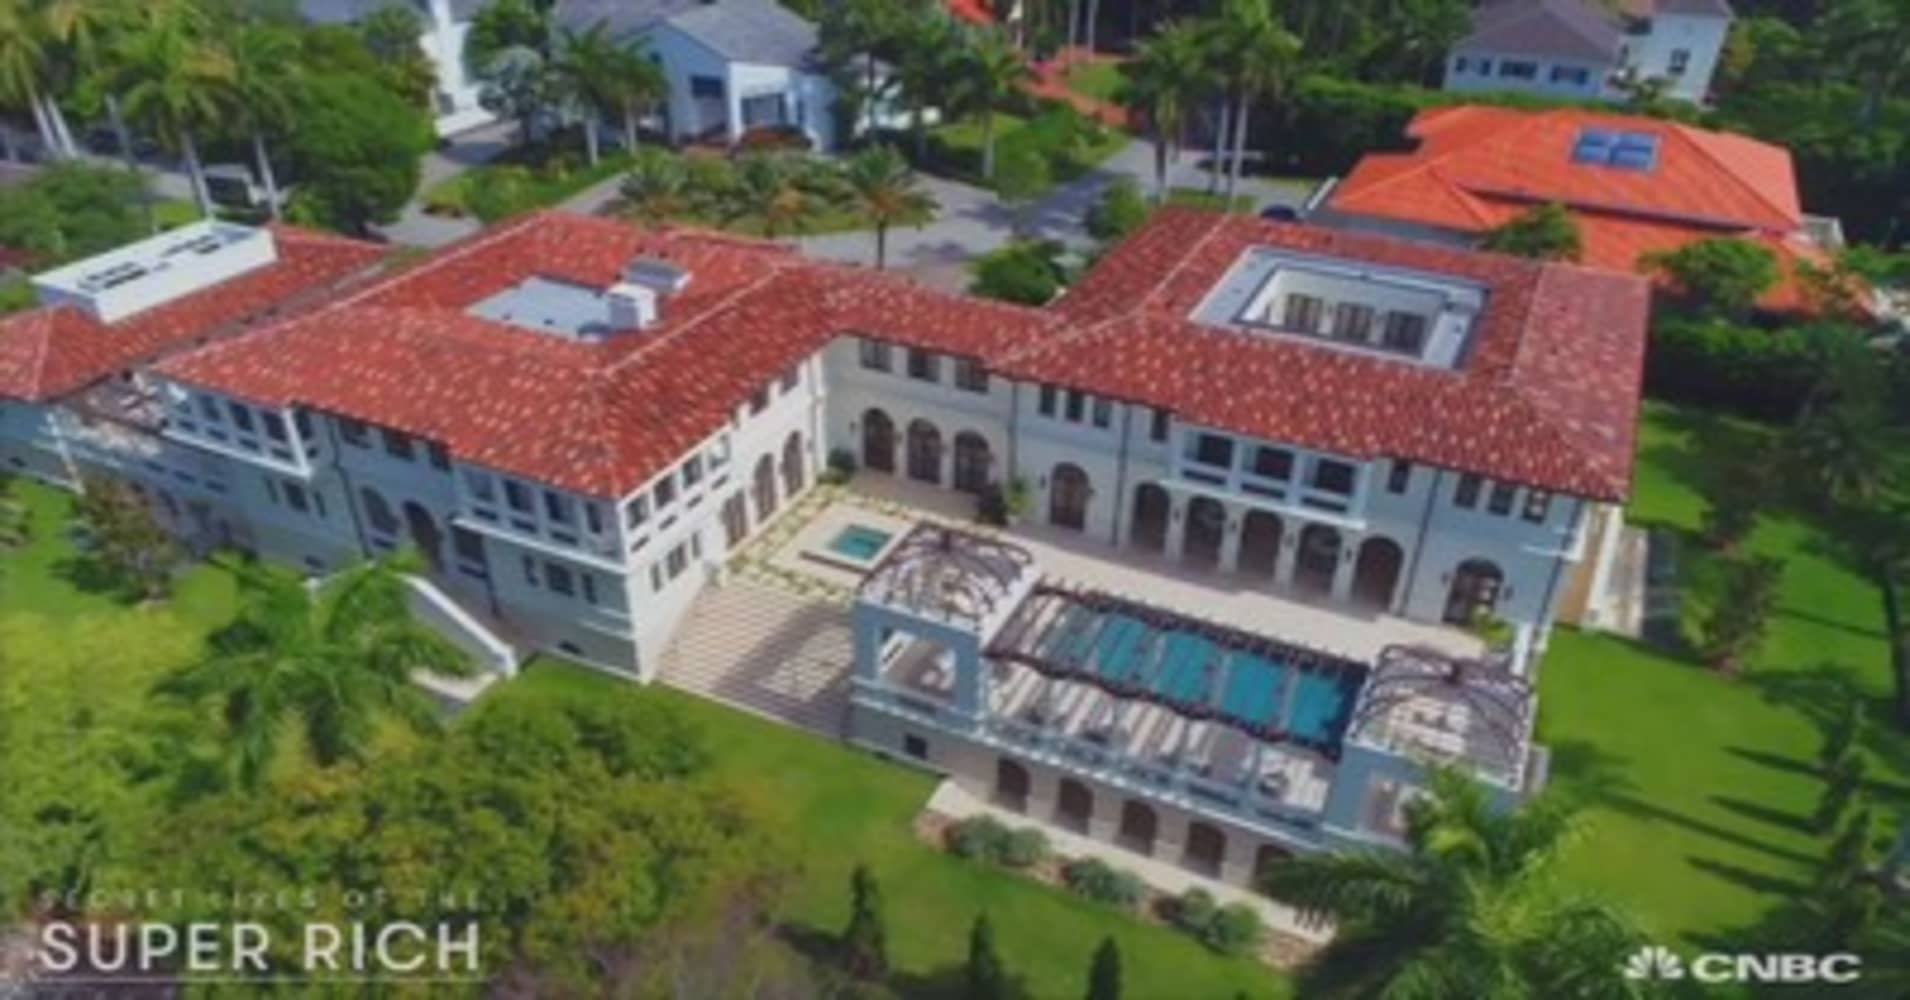 This $25 million Miami mansion is owned by a Bacardi heiress